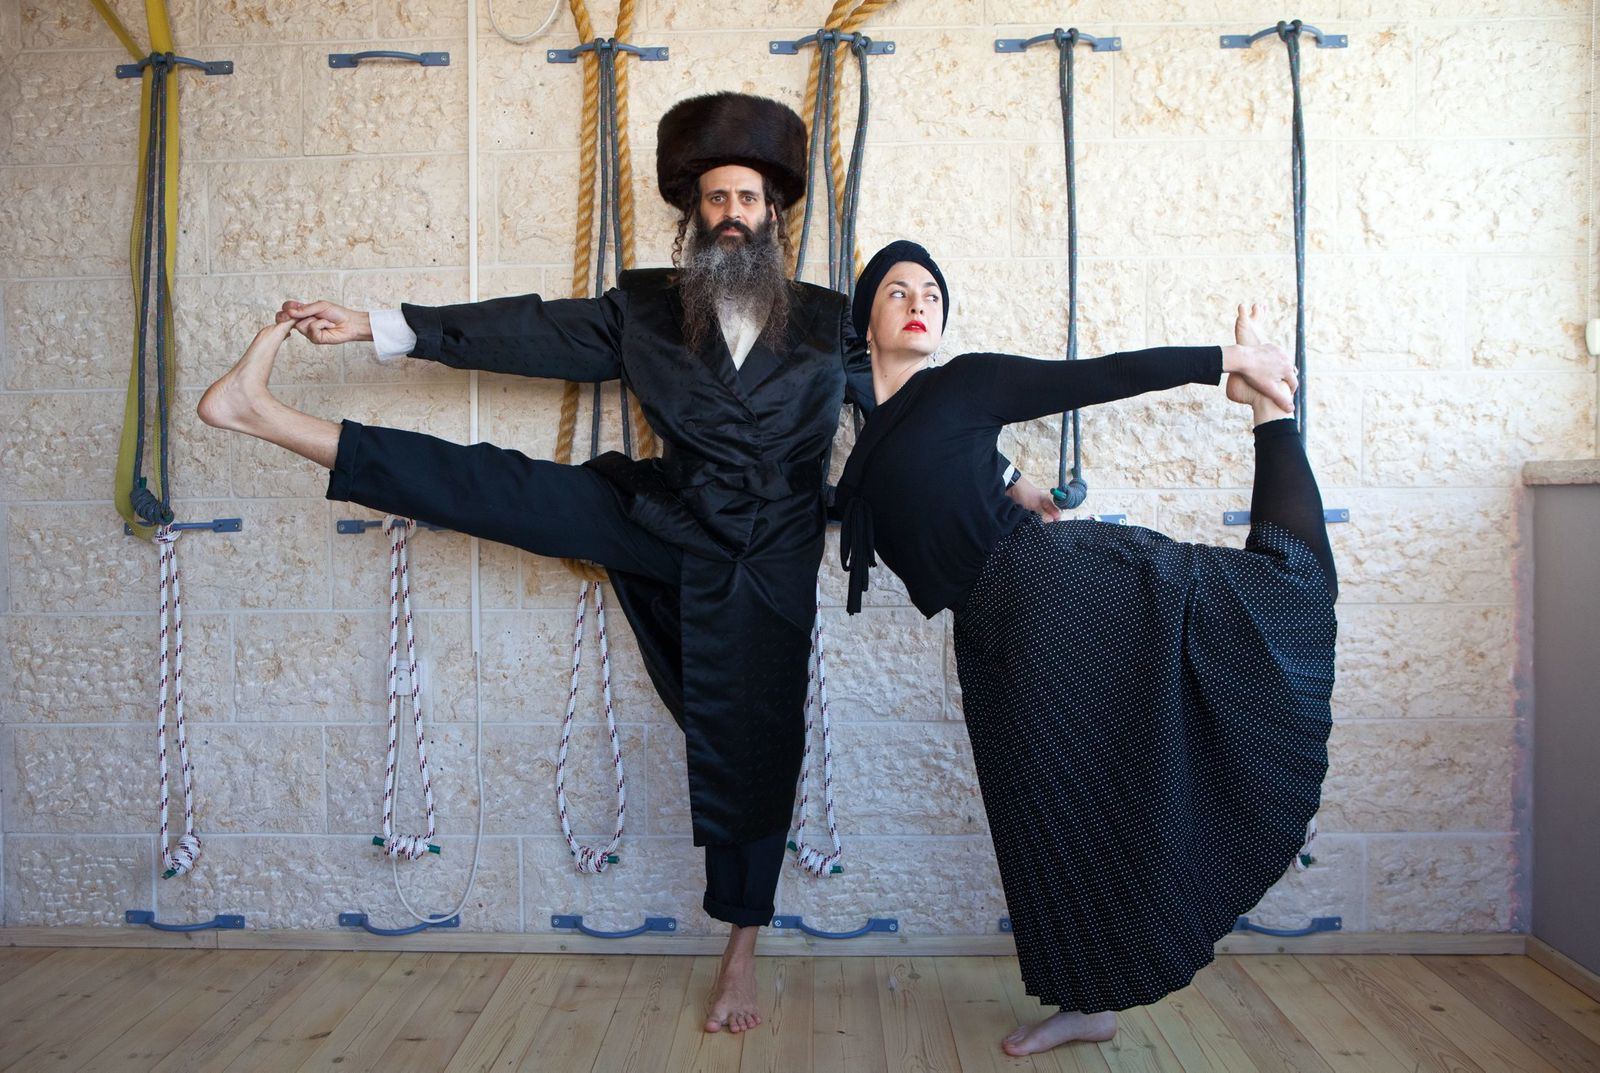 Hassidic couple teaches Yoga, at Ramat Beit Shemesh (Israël)